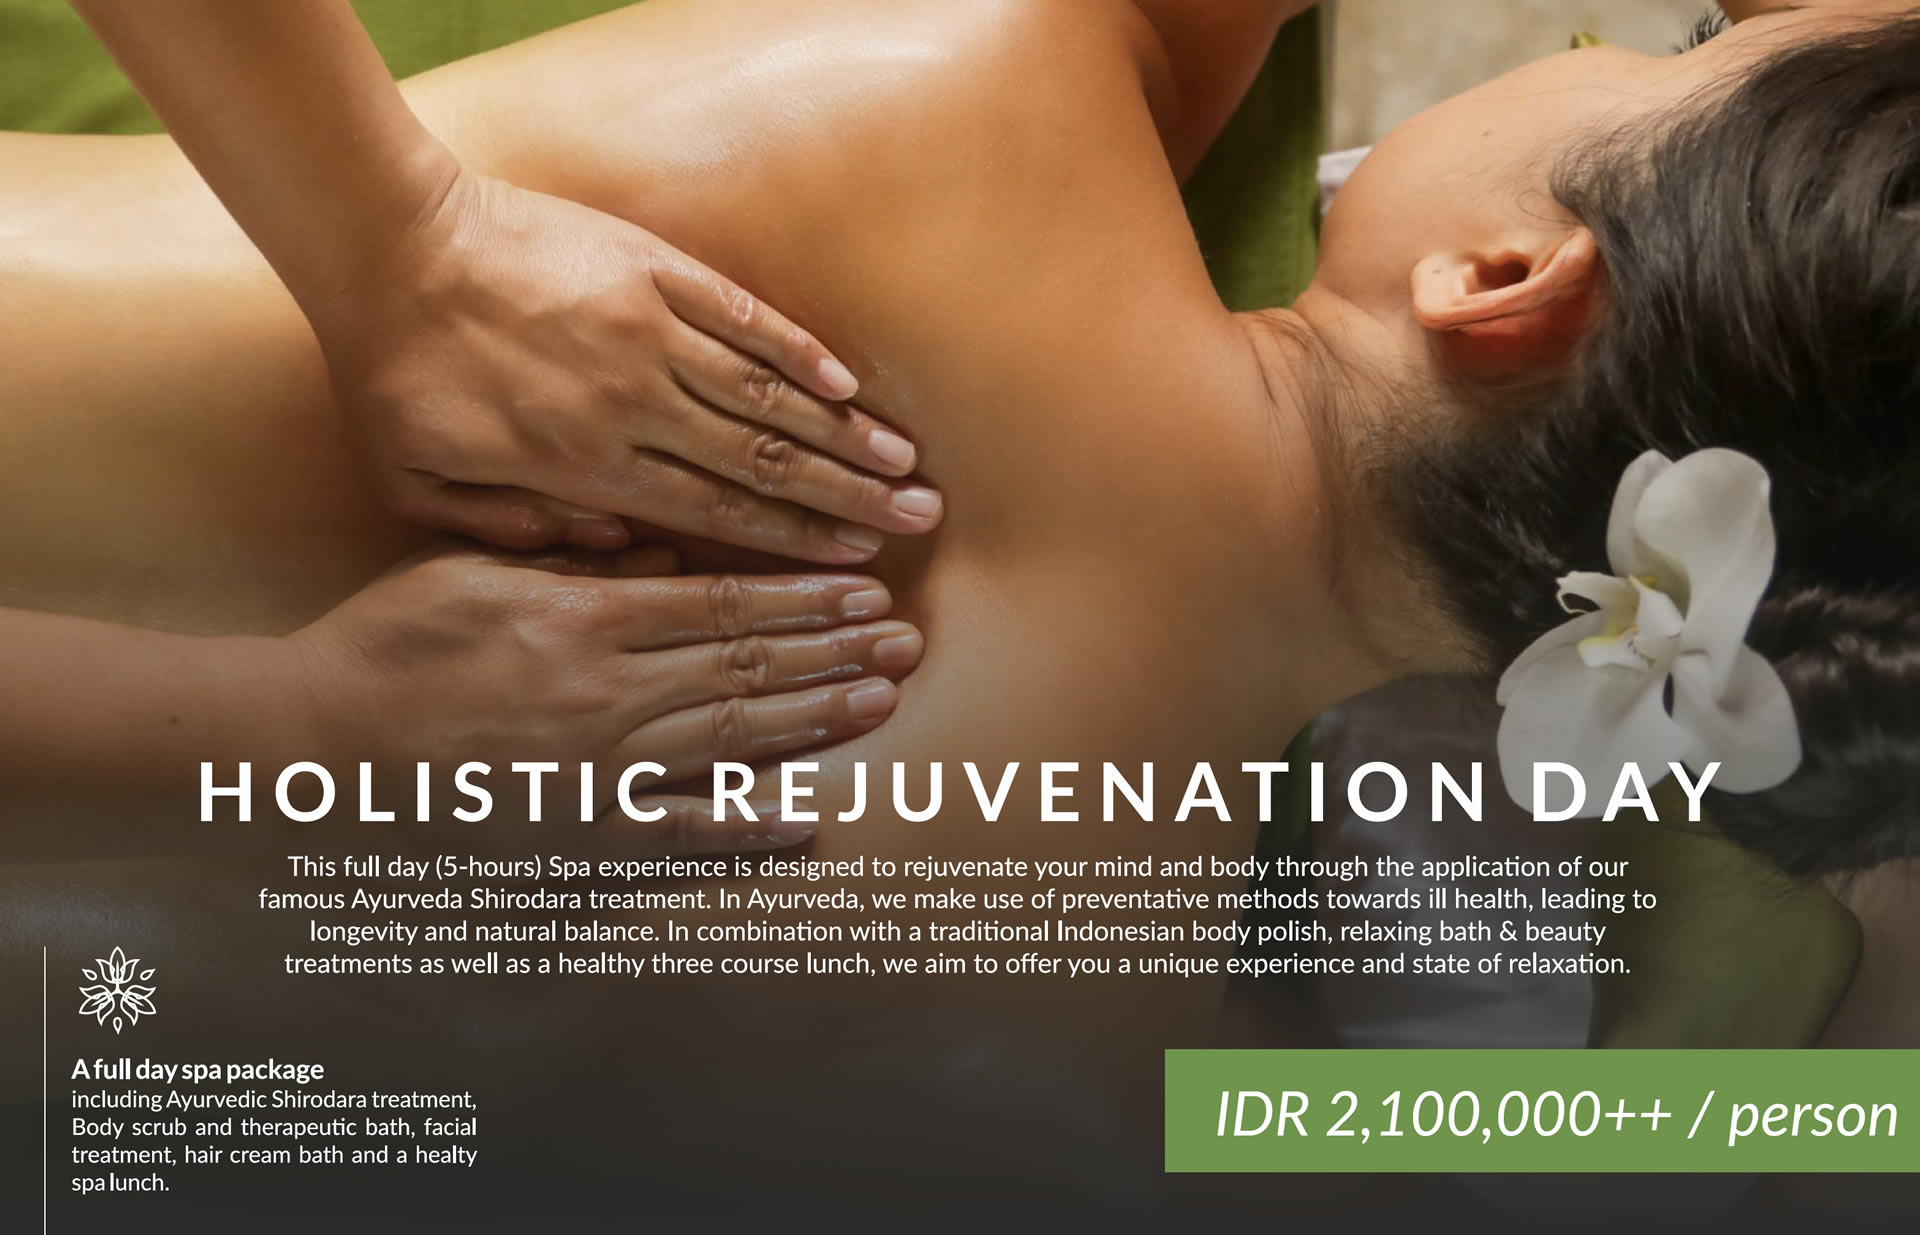 holistic rejuvenation